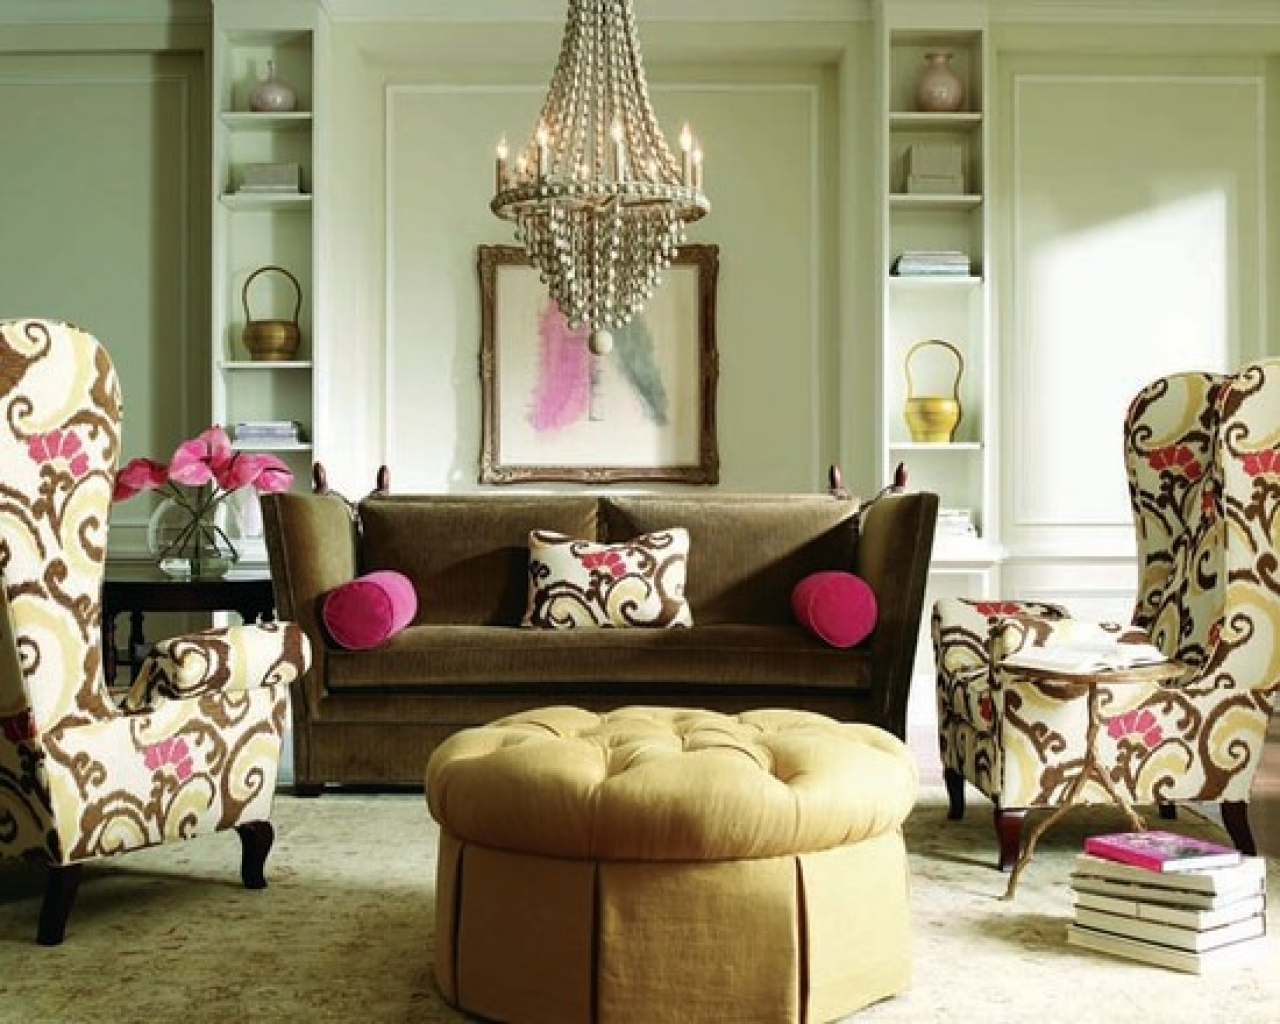 25 stunning eclectic living room decor ideas for Decoration ideas living room